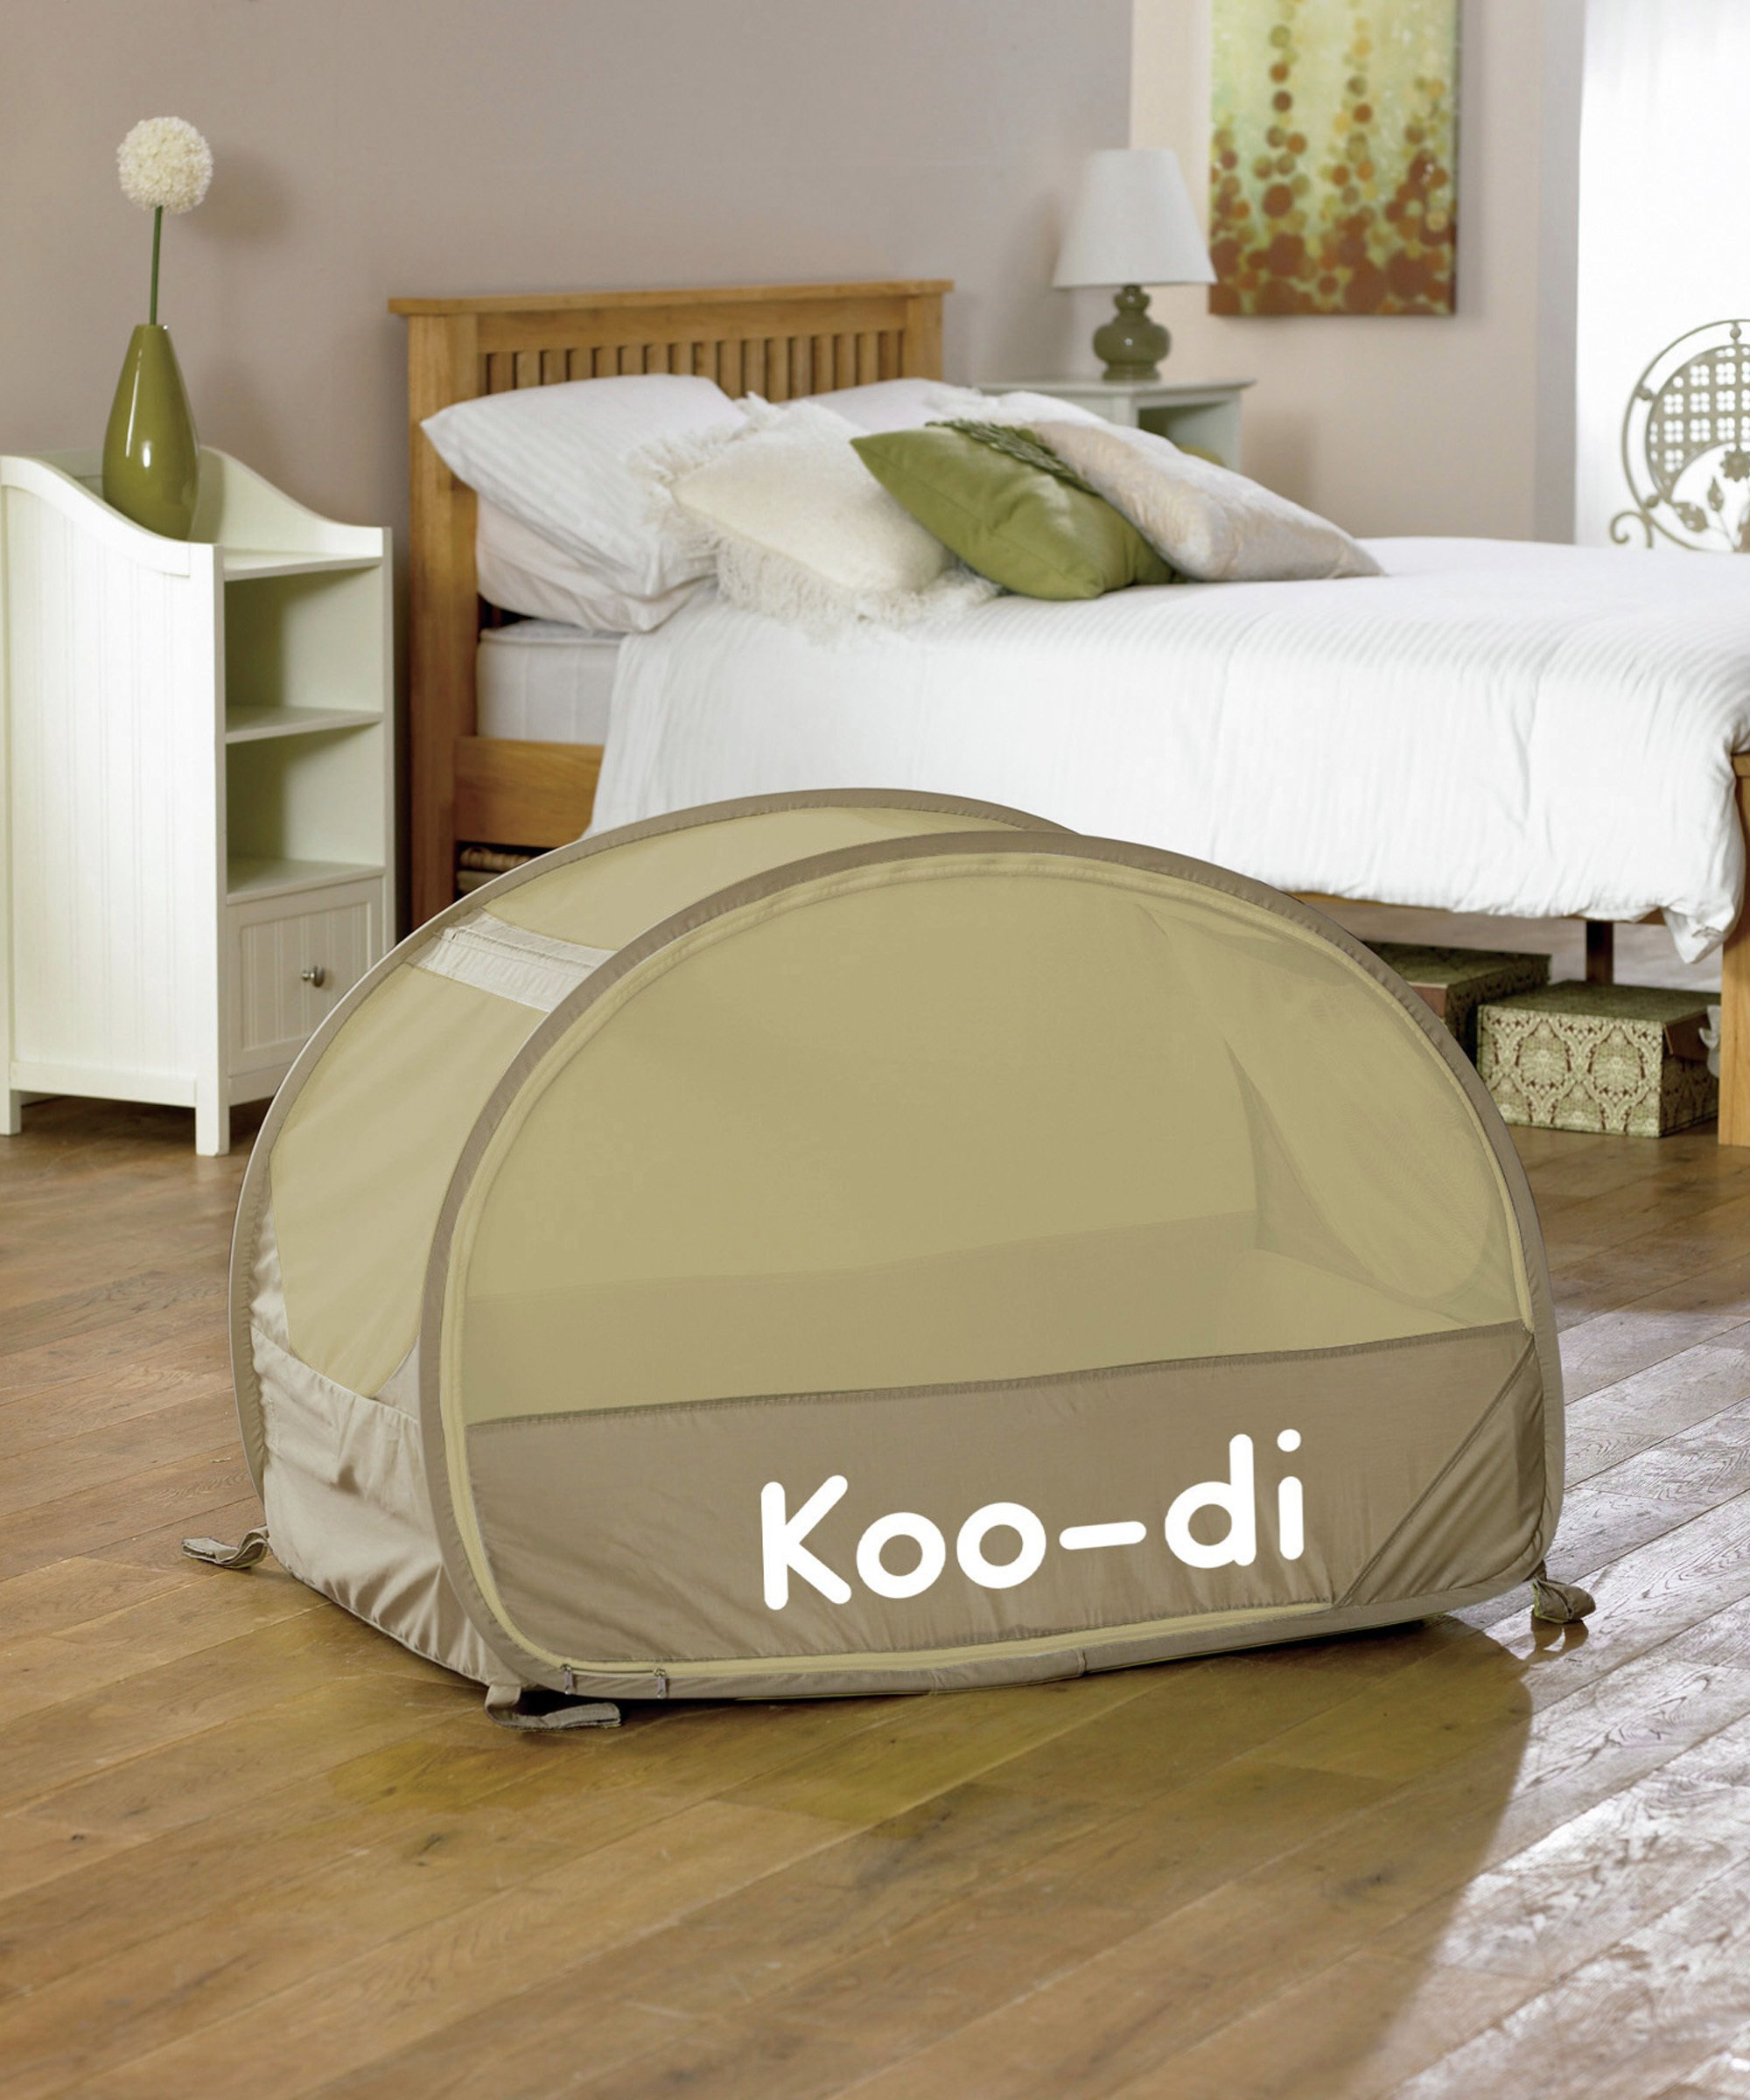 Image of Koo-di - Pop Up Bubble - Travel - Cot - Caf? Cr?me